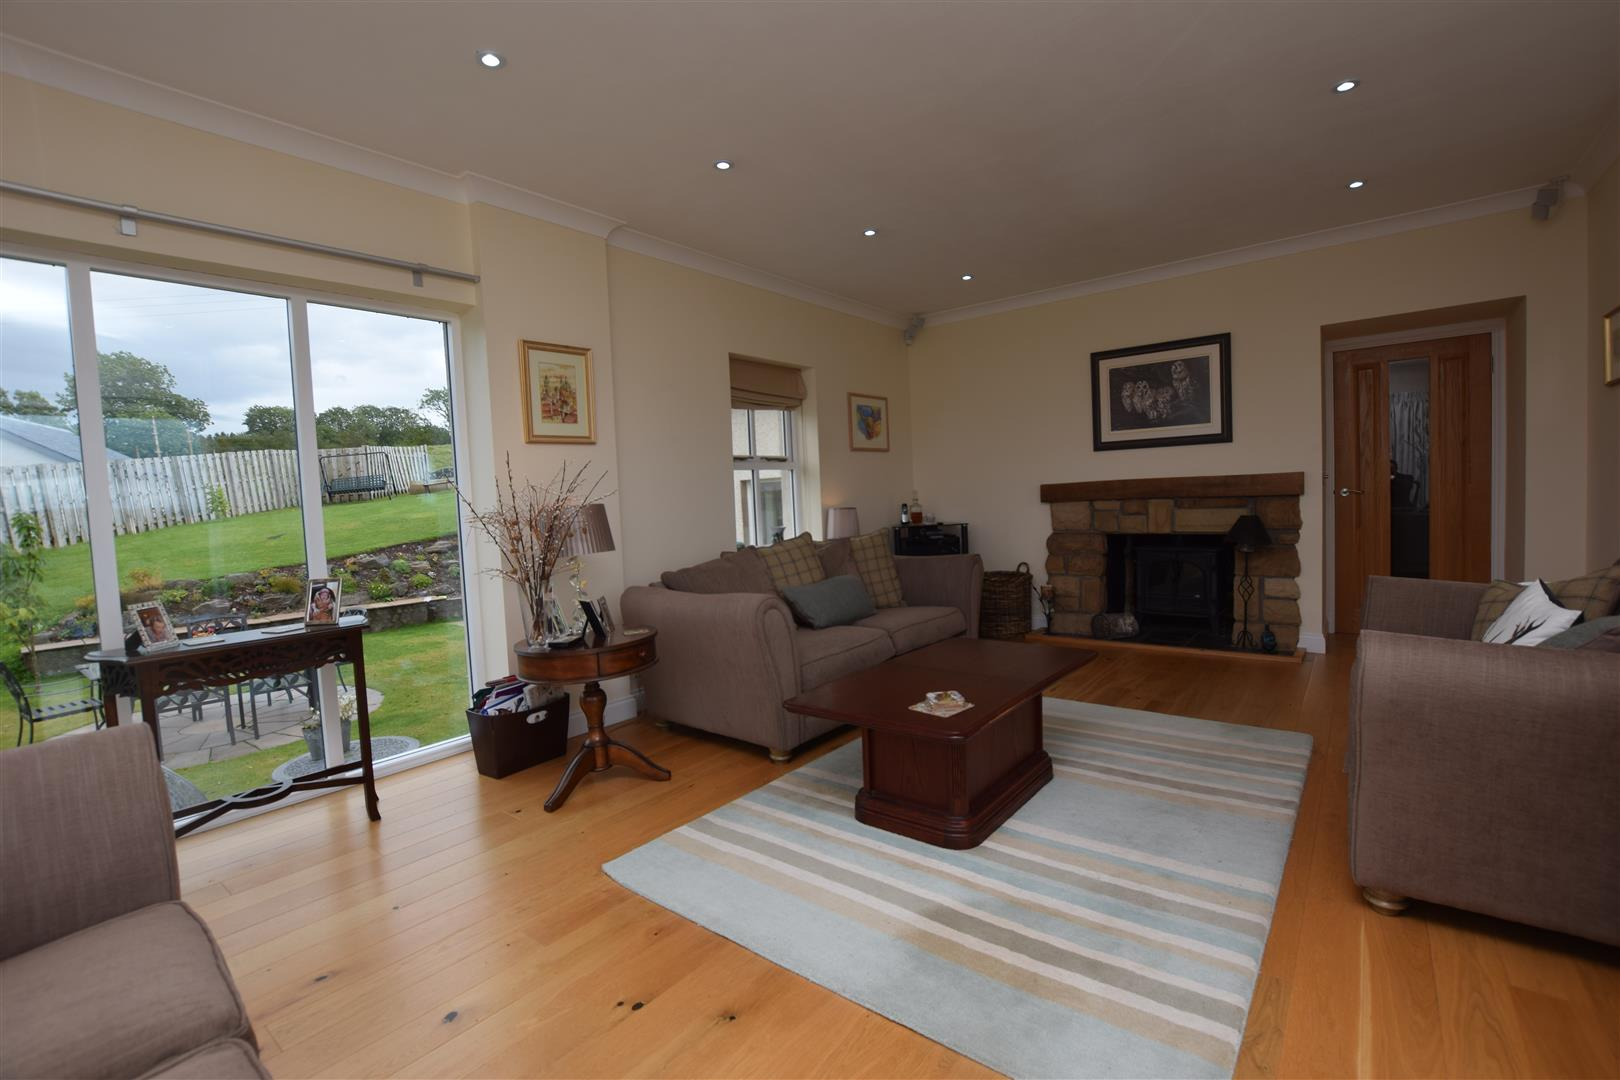 Ross Farm Cottage, Ross Farm Cottage, Madderty, Crieff, Perthshire, PH7 3PQ, UK